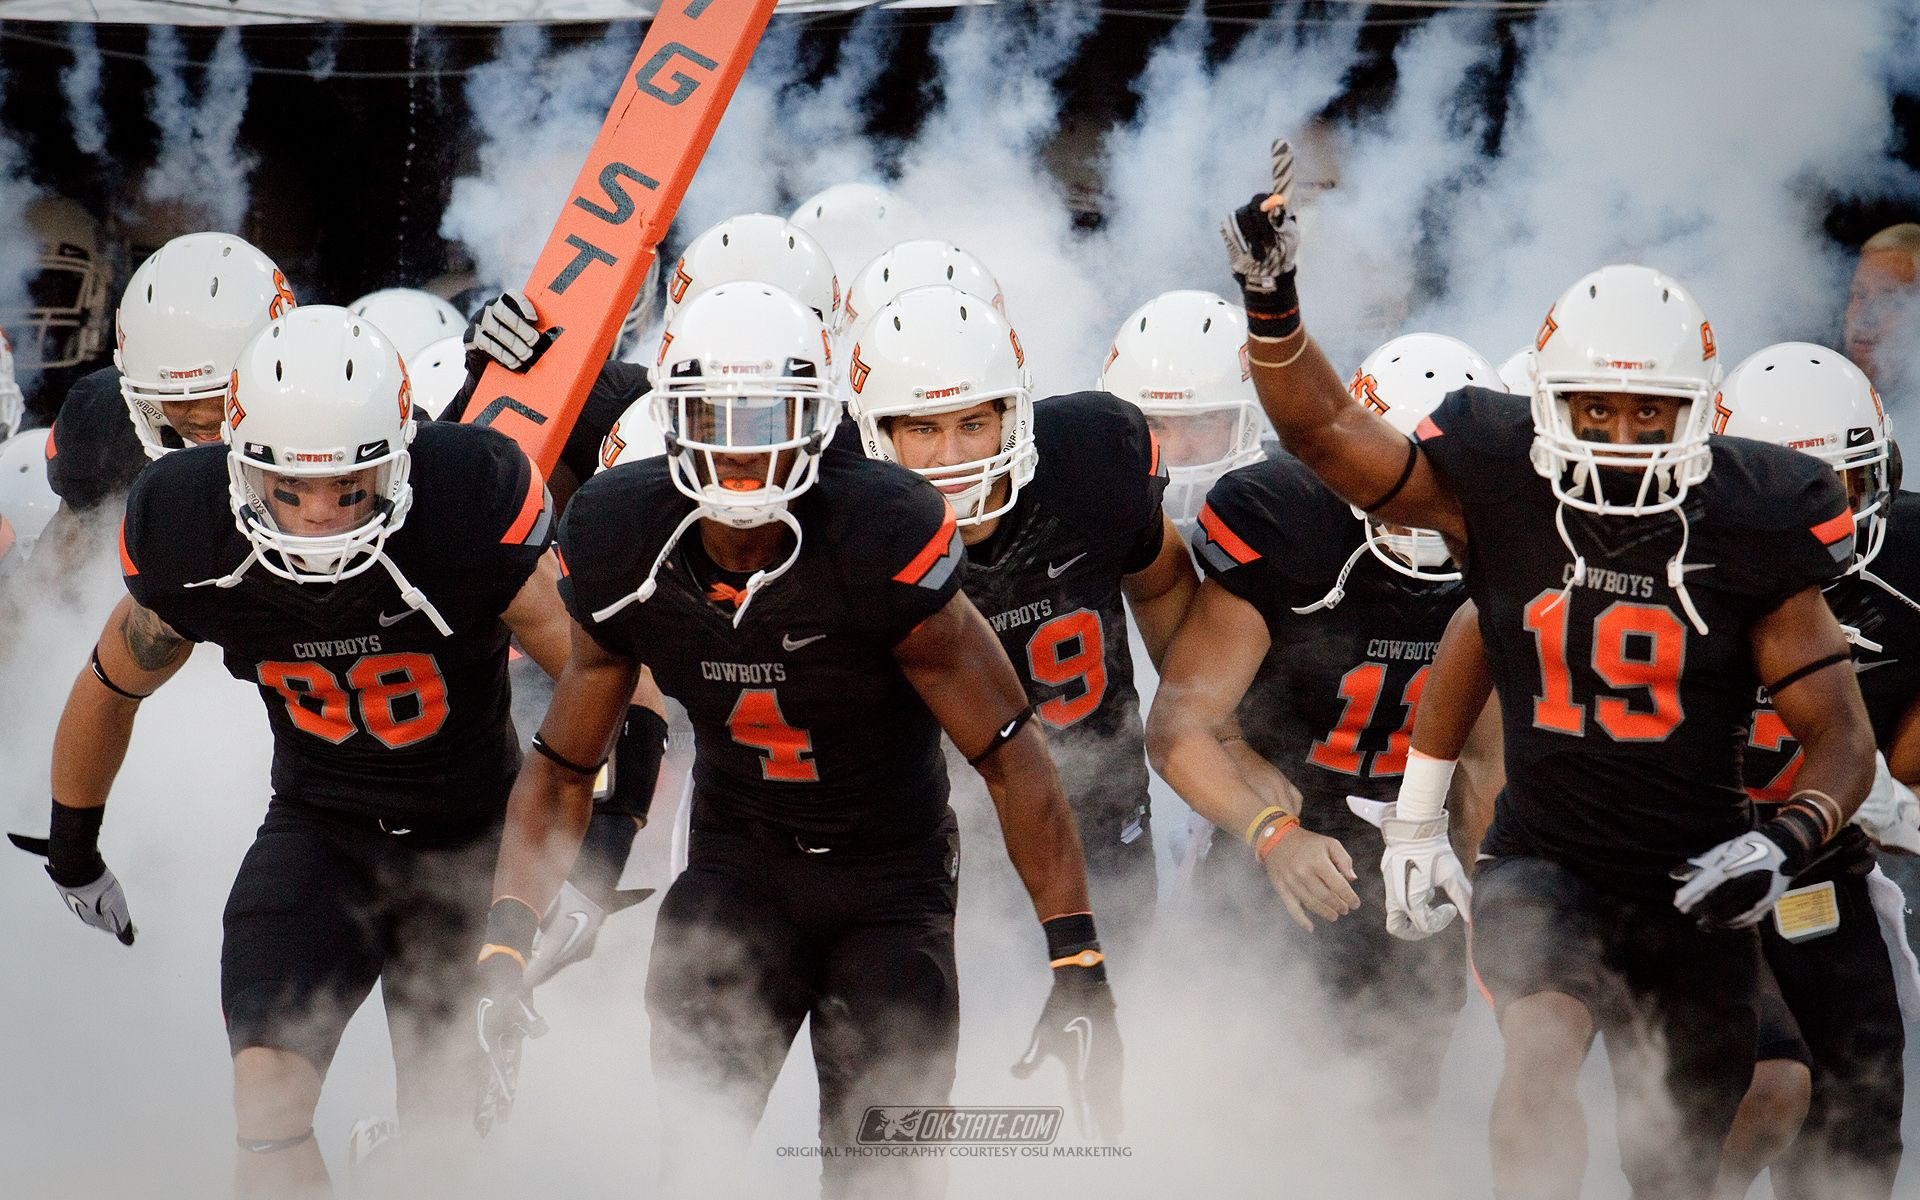 Pin By Jamie Knorr On I Bleed Orange Oklahoma State University With Images Oklahoma State Cowboys Football Cowboys Football Schedule Oklahoma State Cowboys